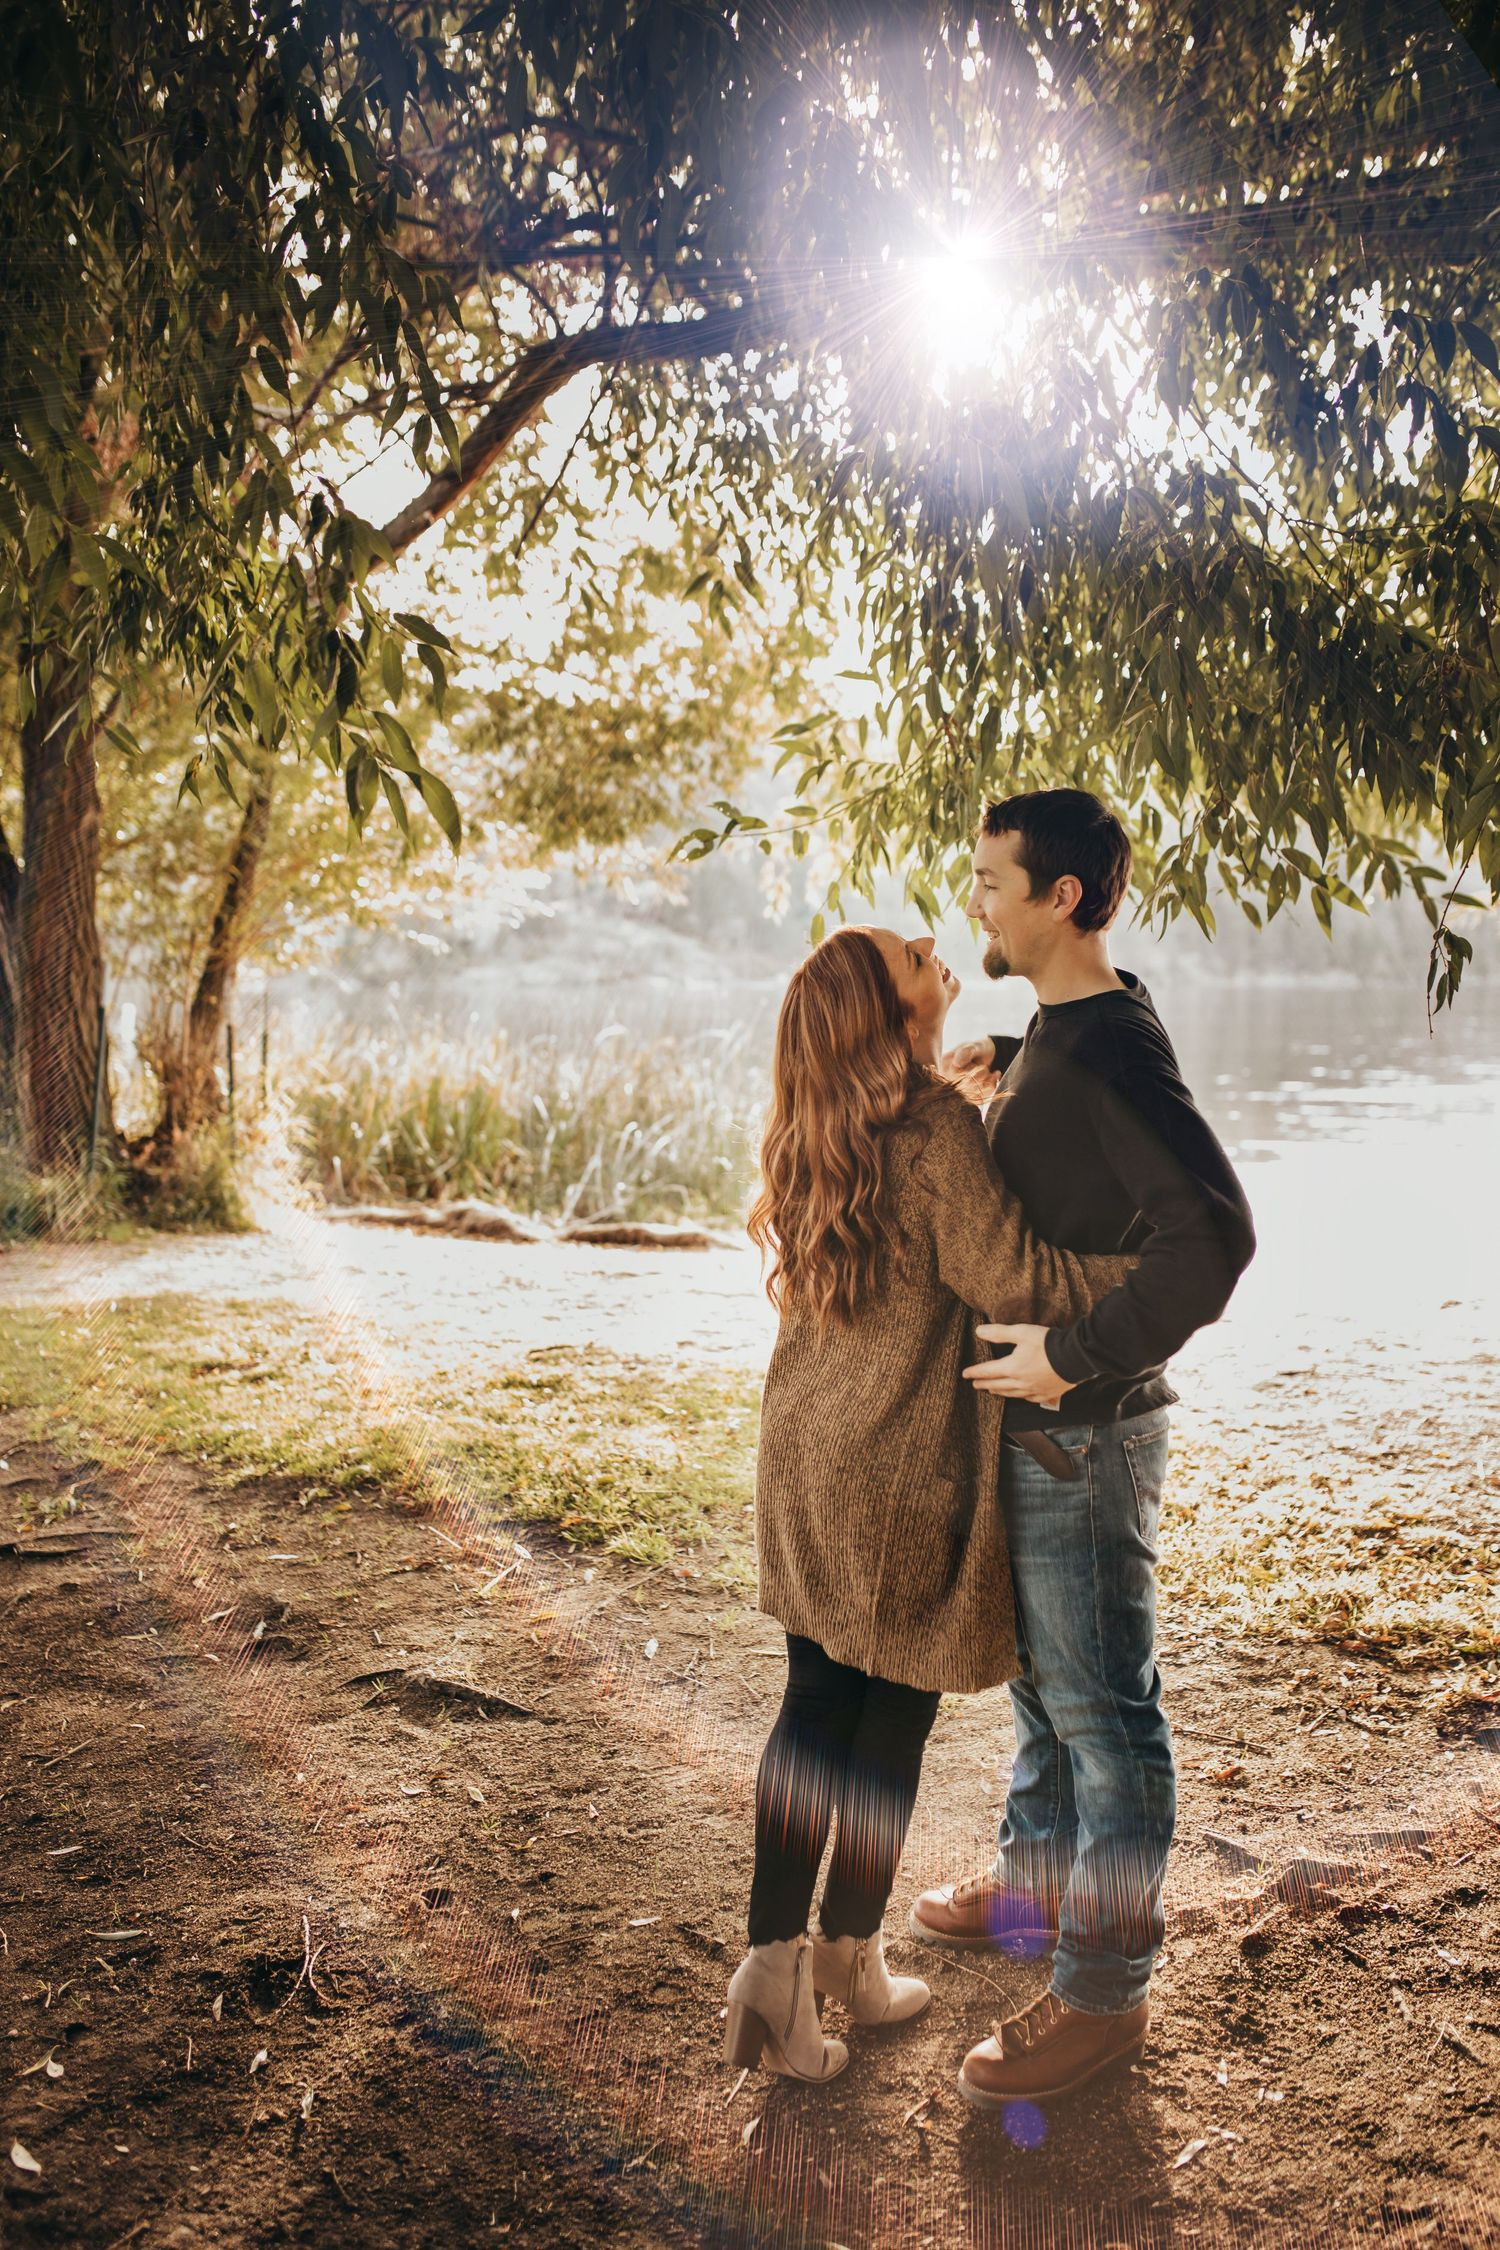 sun flair fall sunset engagement photos liberty lake large tree Soulful Hues Photography